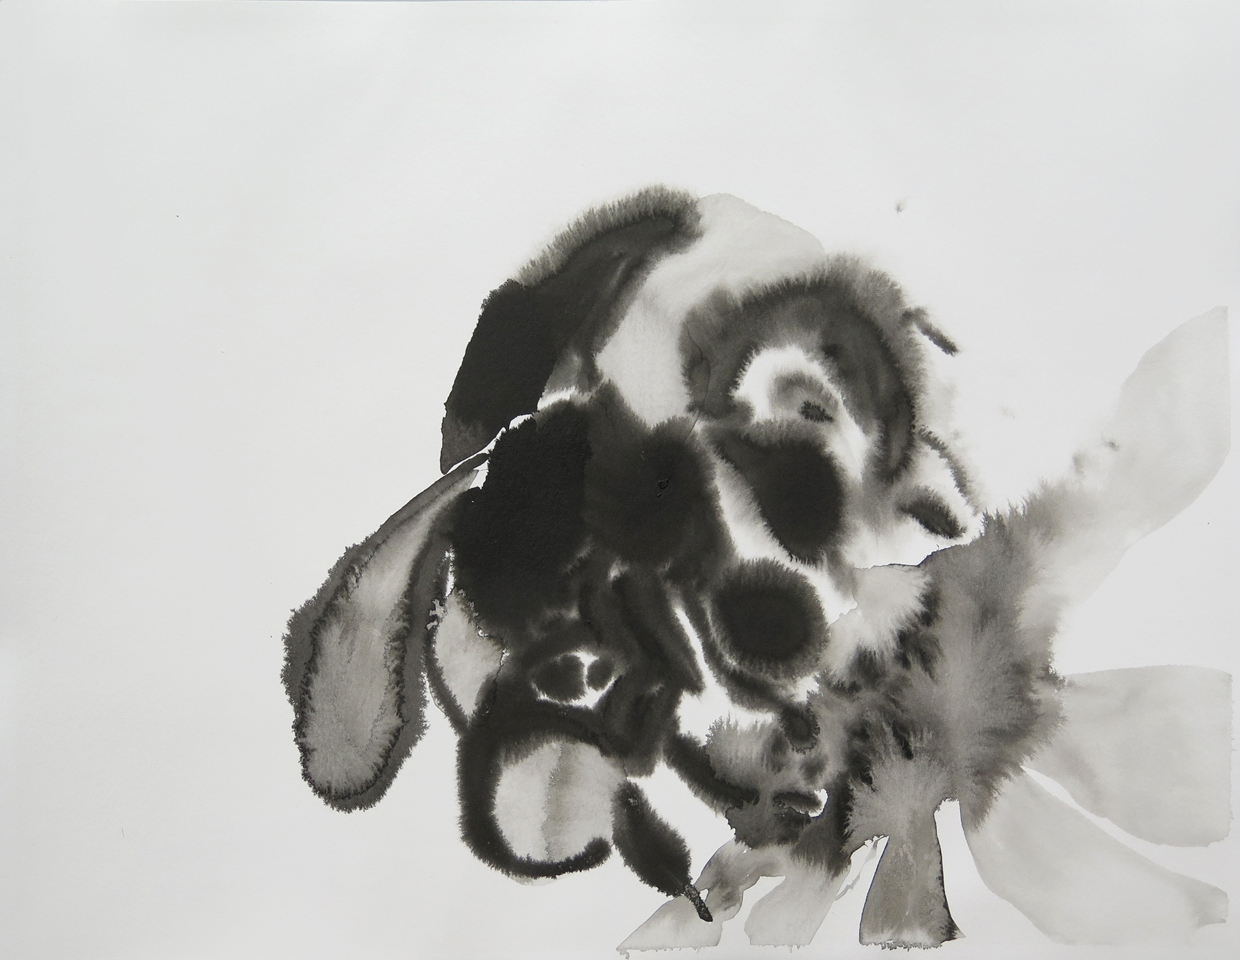 Bee 07   Ink on paper, 10.6 in. x 13.8 in. 2013